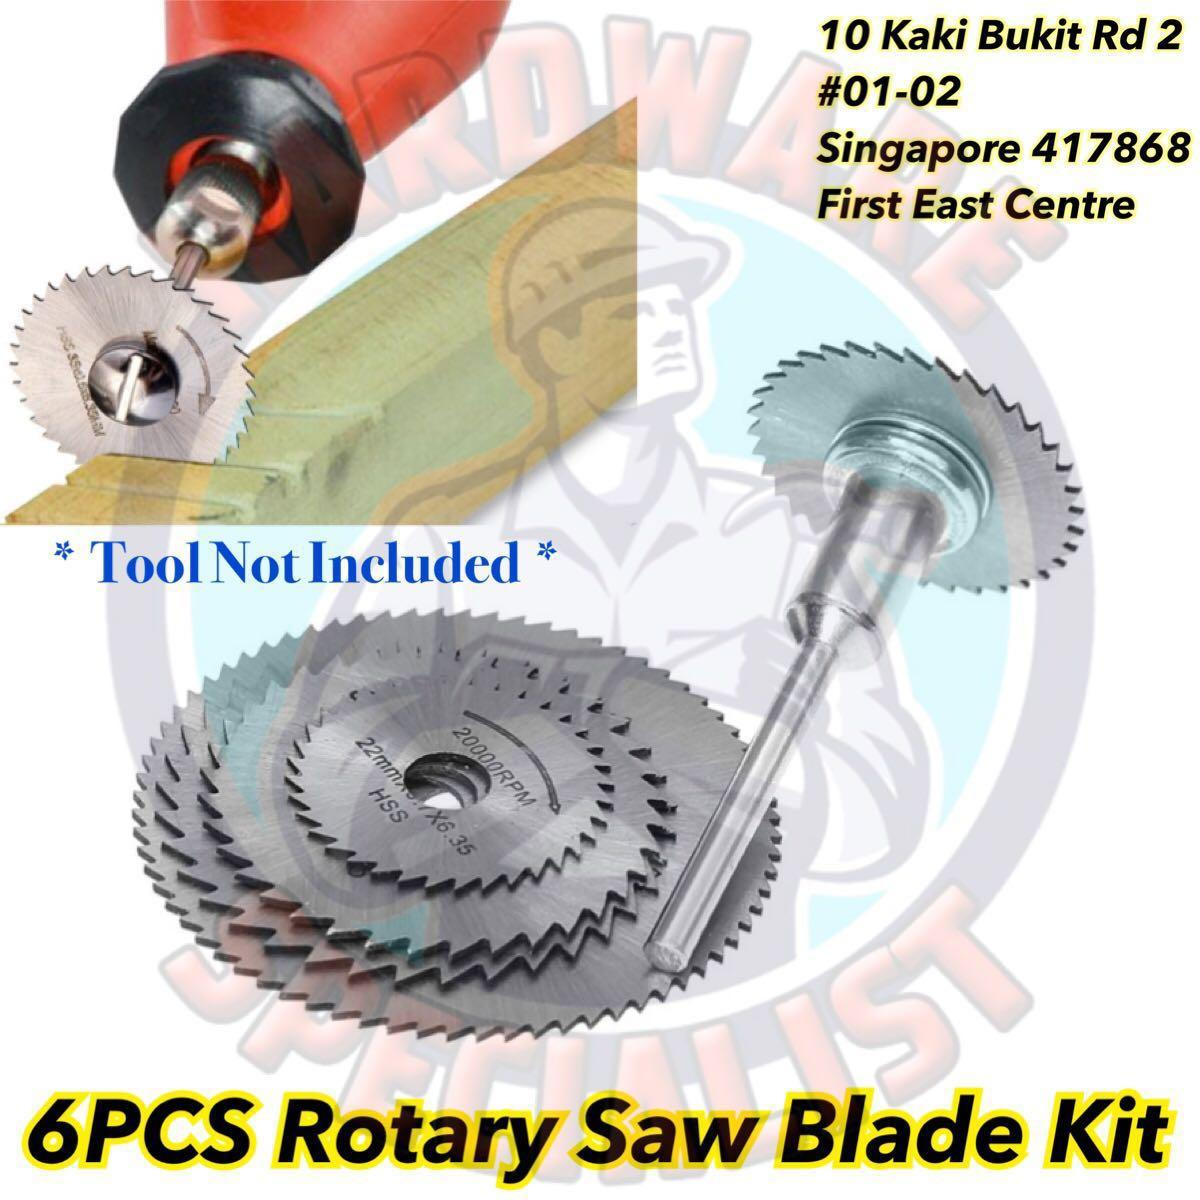 6 PCS HSS Circular Saw Blade For Rotary Tool (Suitable For Dremel)